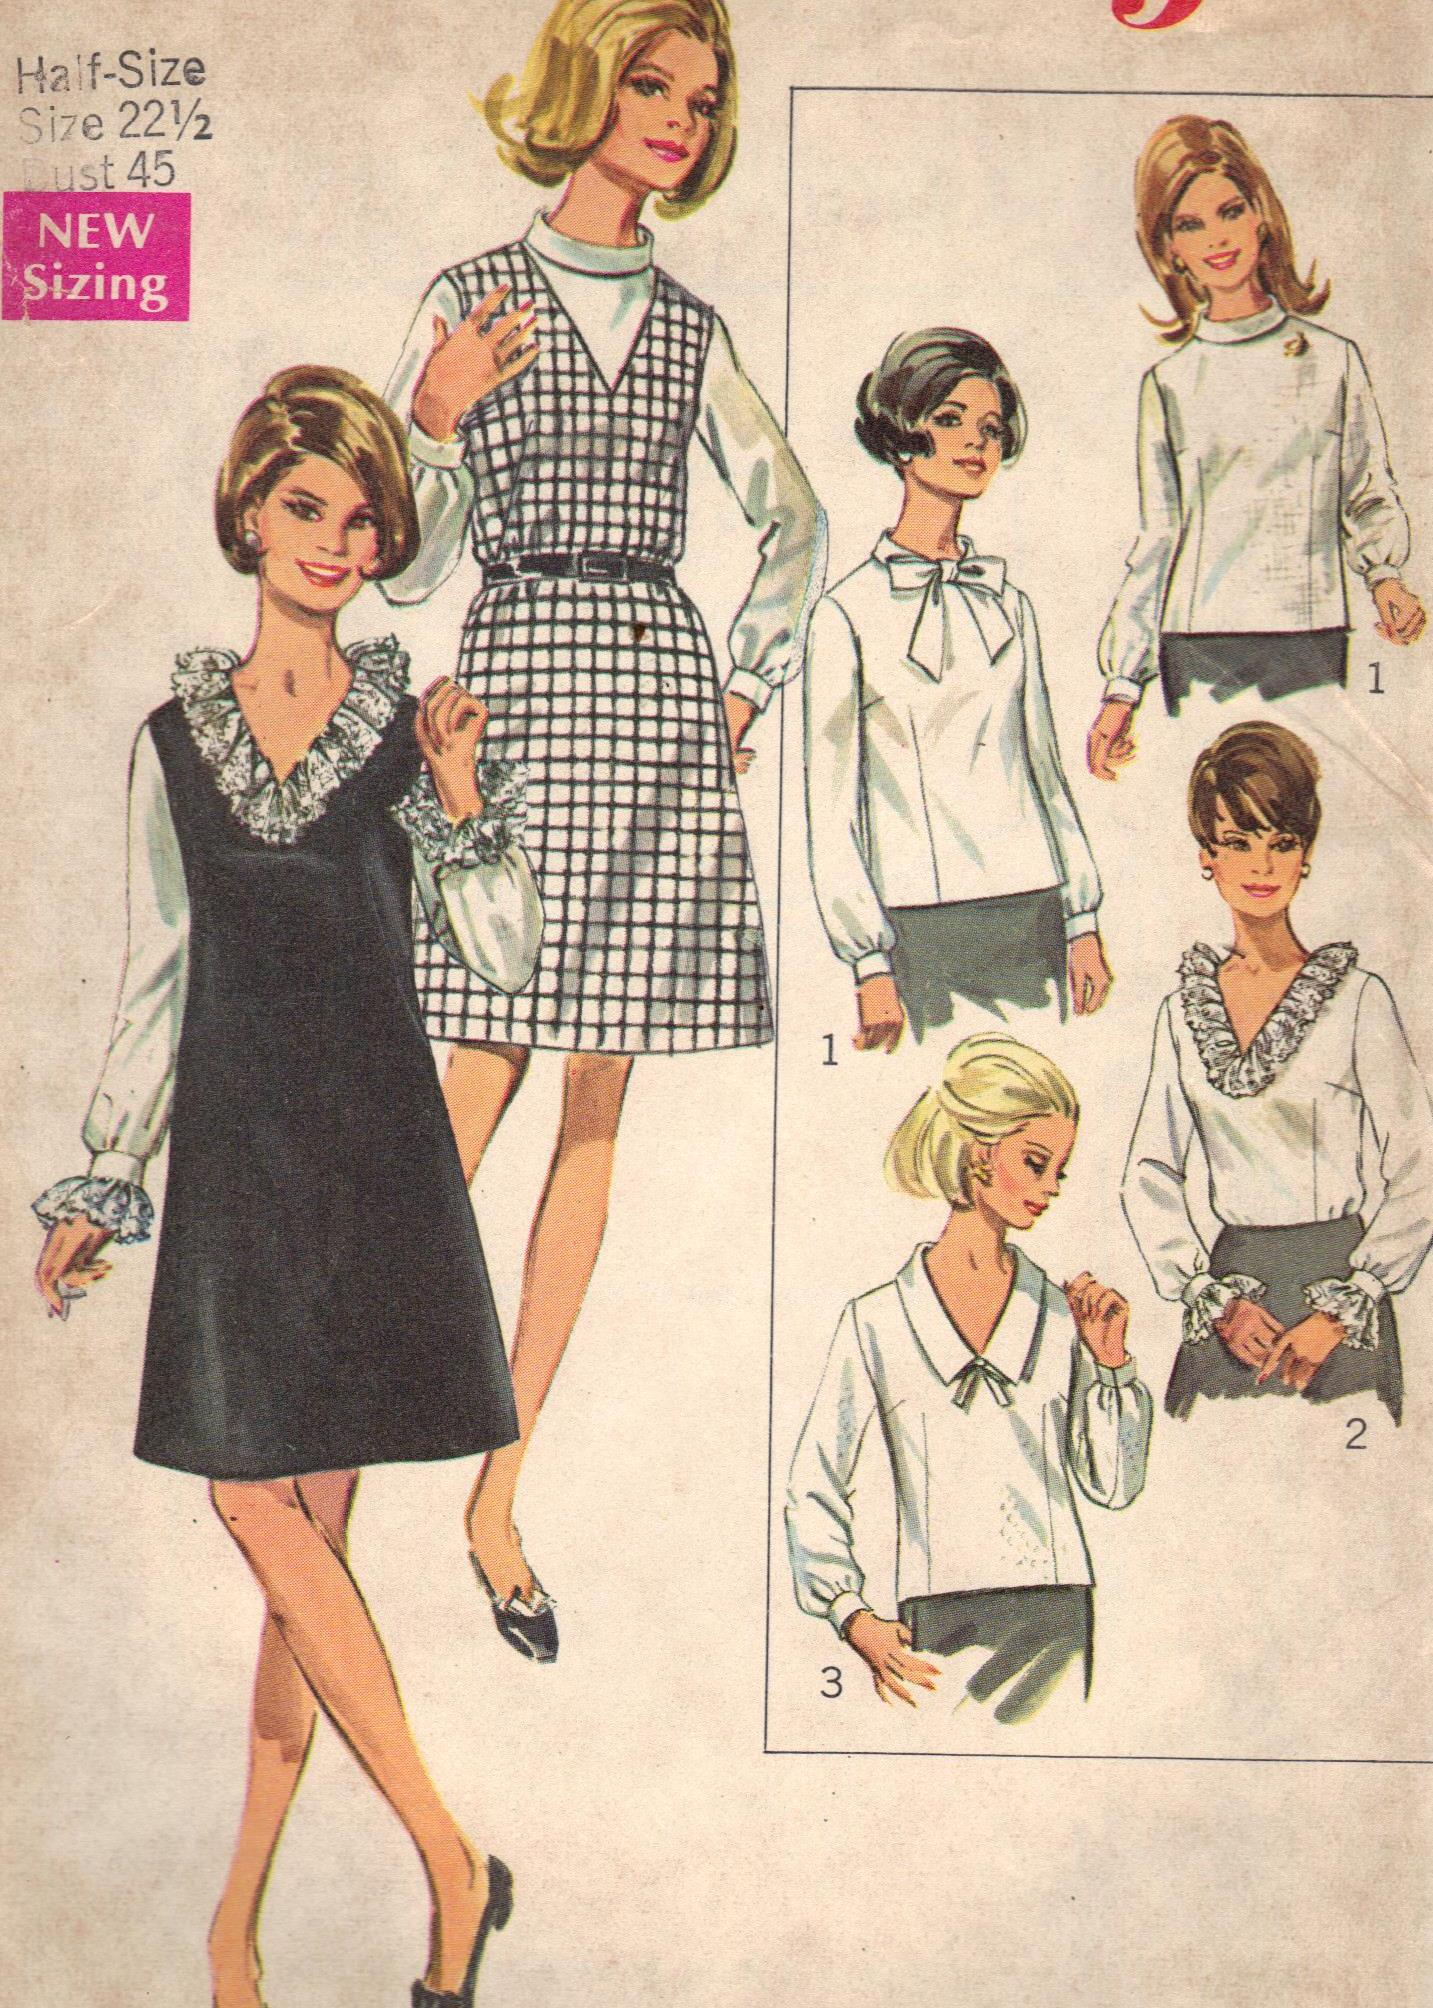 7767 Simplicity Vintage Sewing Pattern Dress Blouse Half Bust 45 Inches